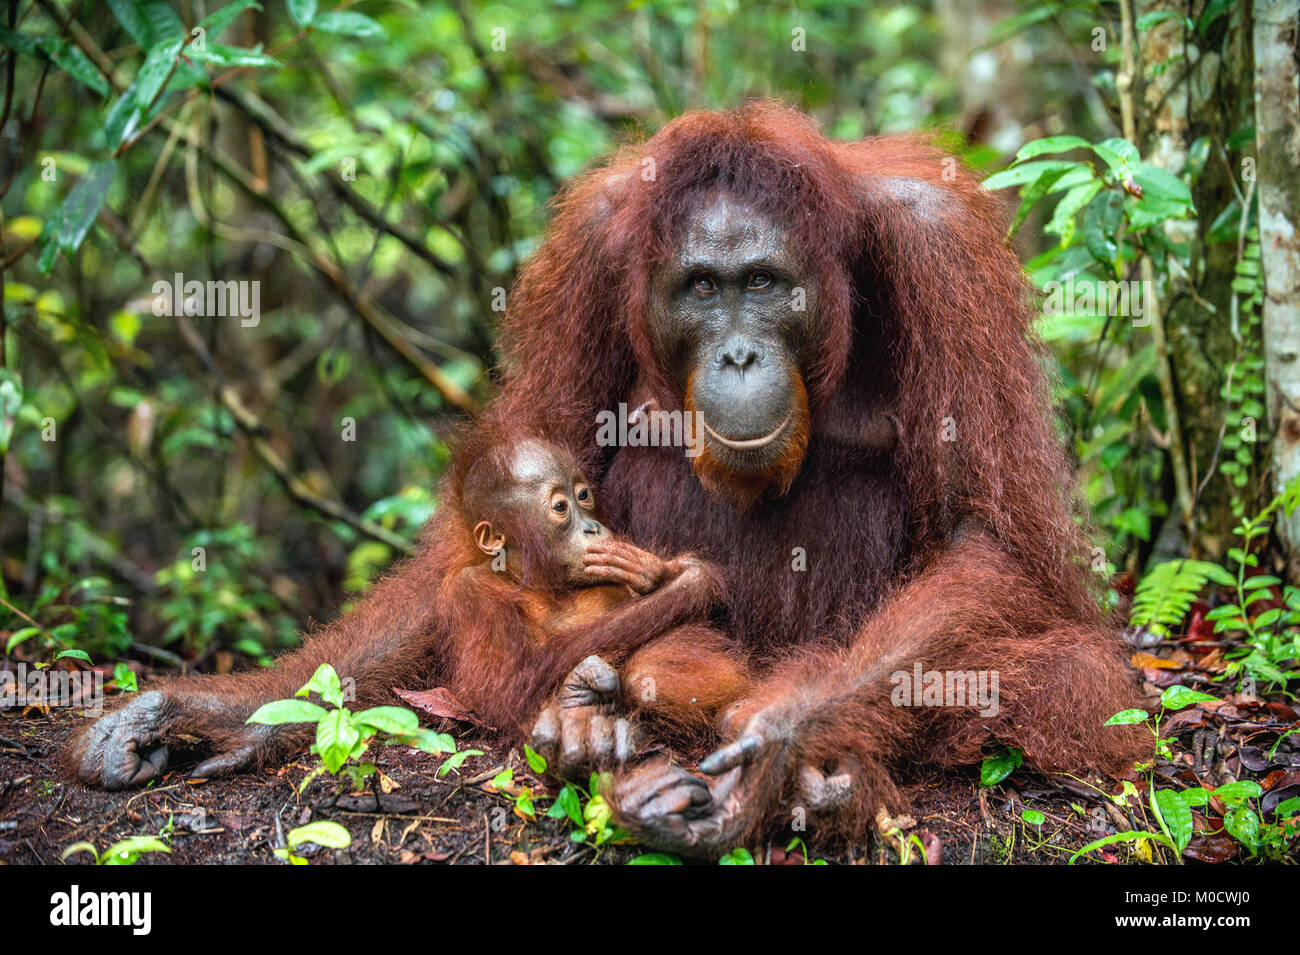 Mother orangutan and cub in a natural habitat. Bornean orangutan (Pongo  pygmaeus wurmmbii) in the wild nature. - Stock Image